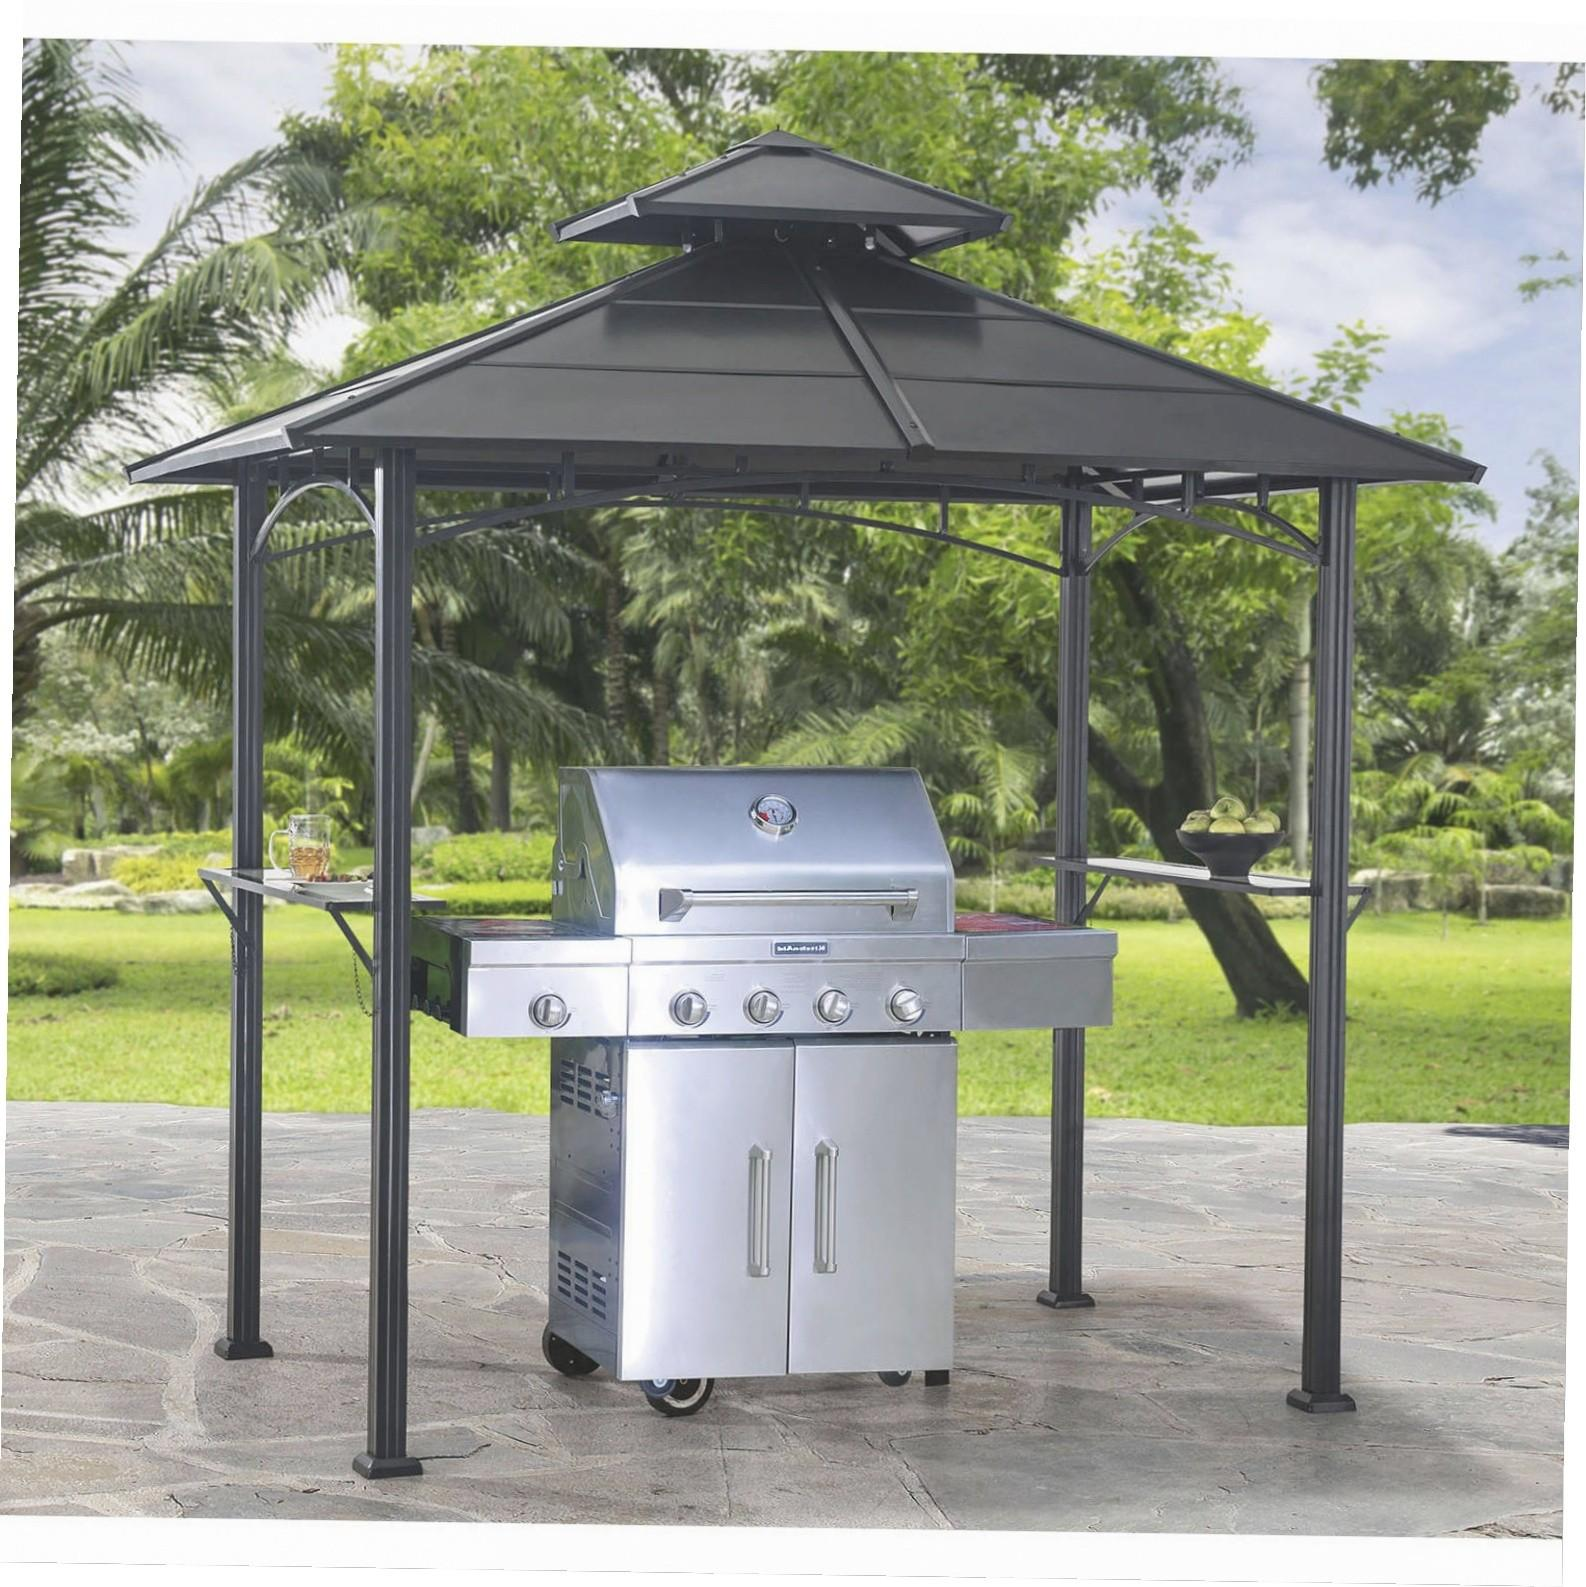 Walmart Grill Gazebo Ideas